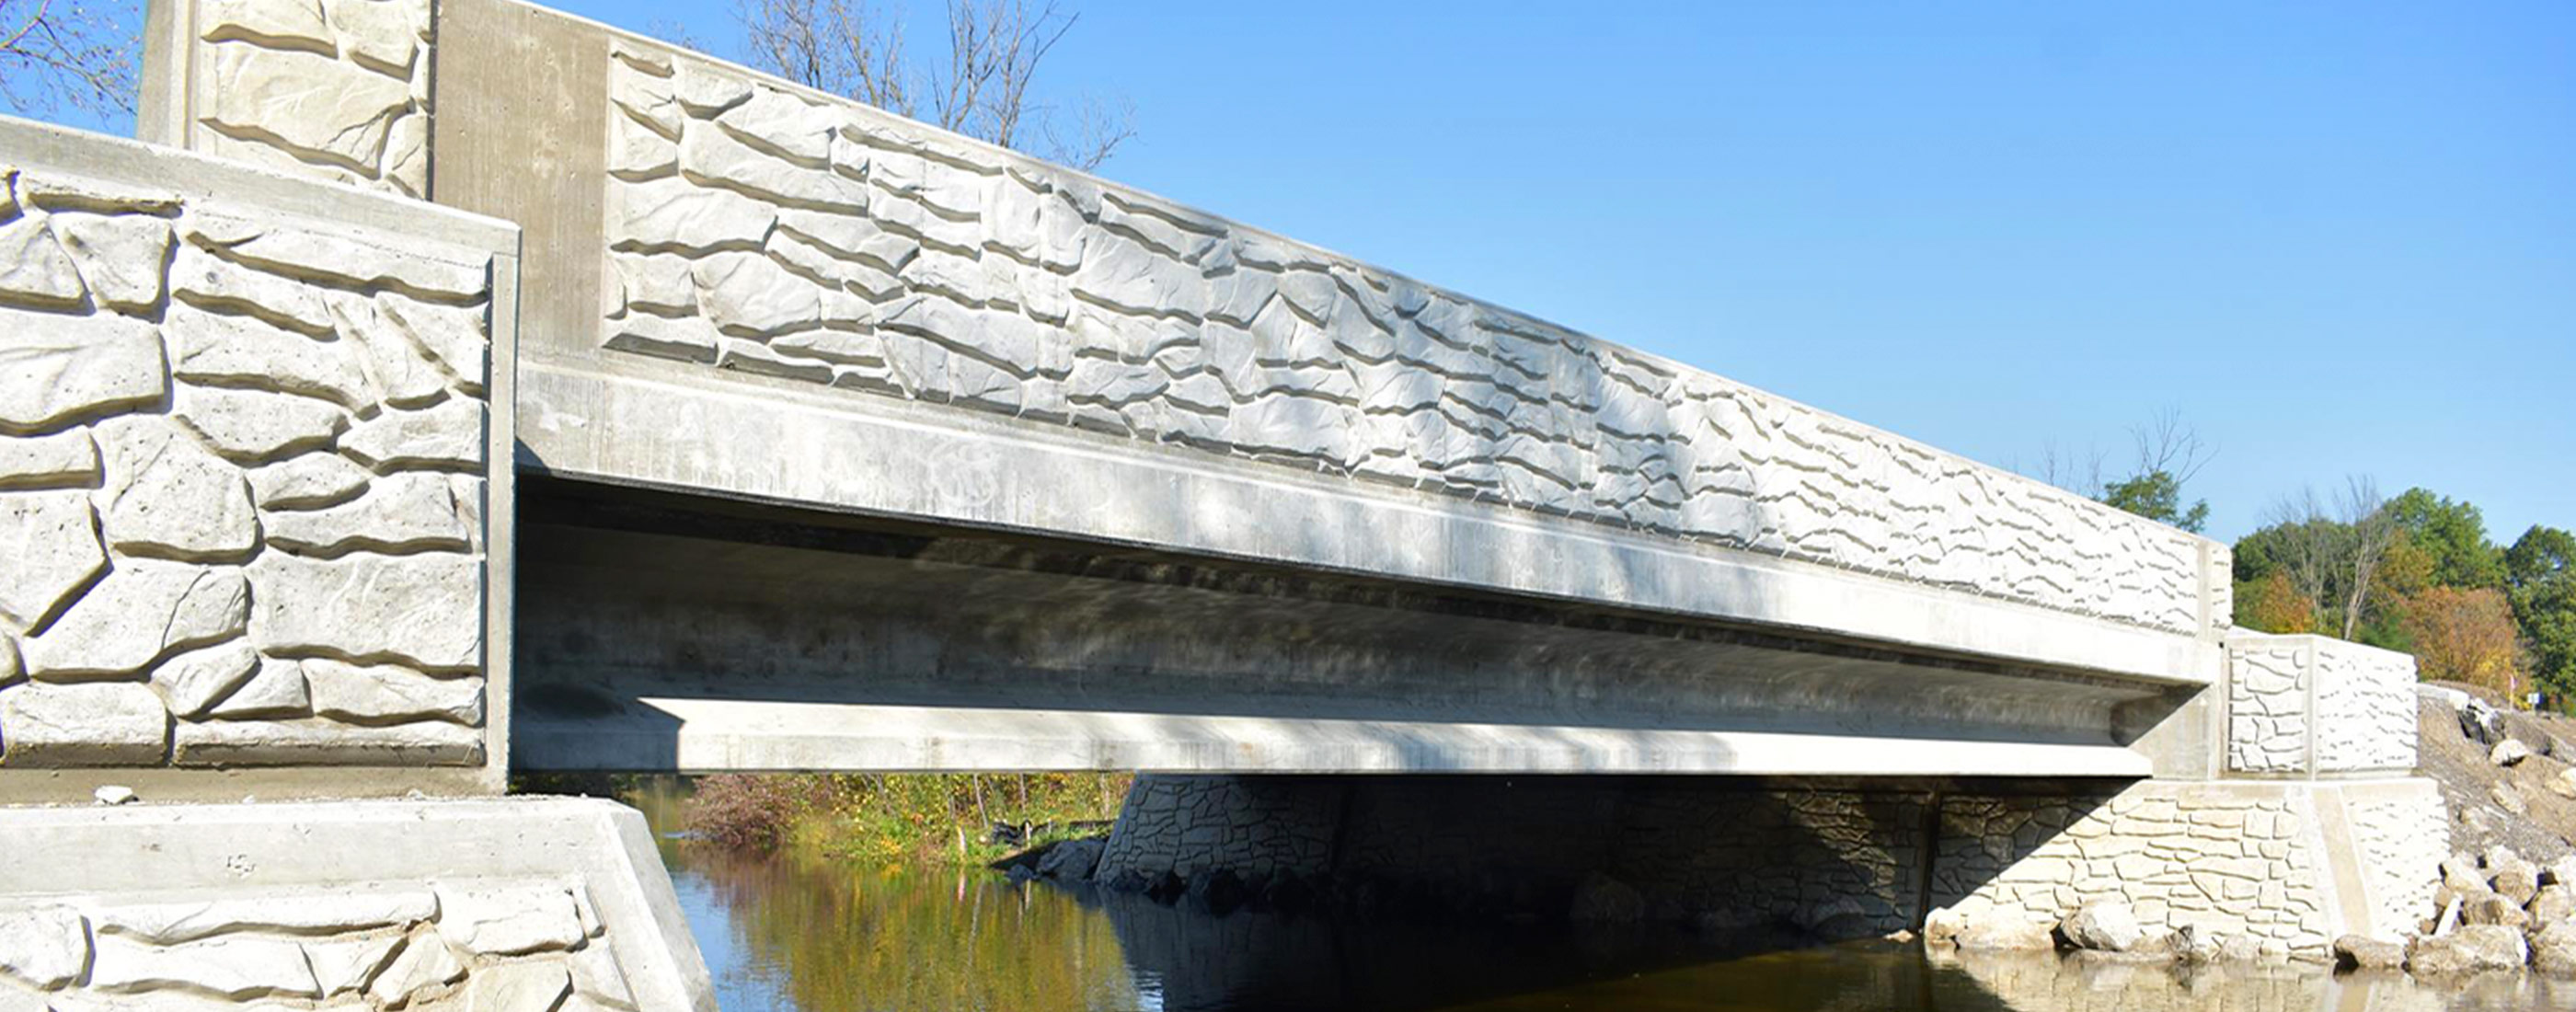 A side view of the new Wixom Road bridge spanning the Huron River.